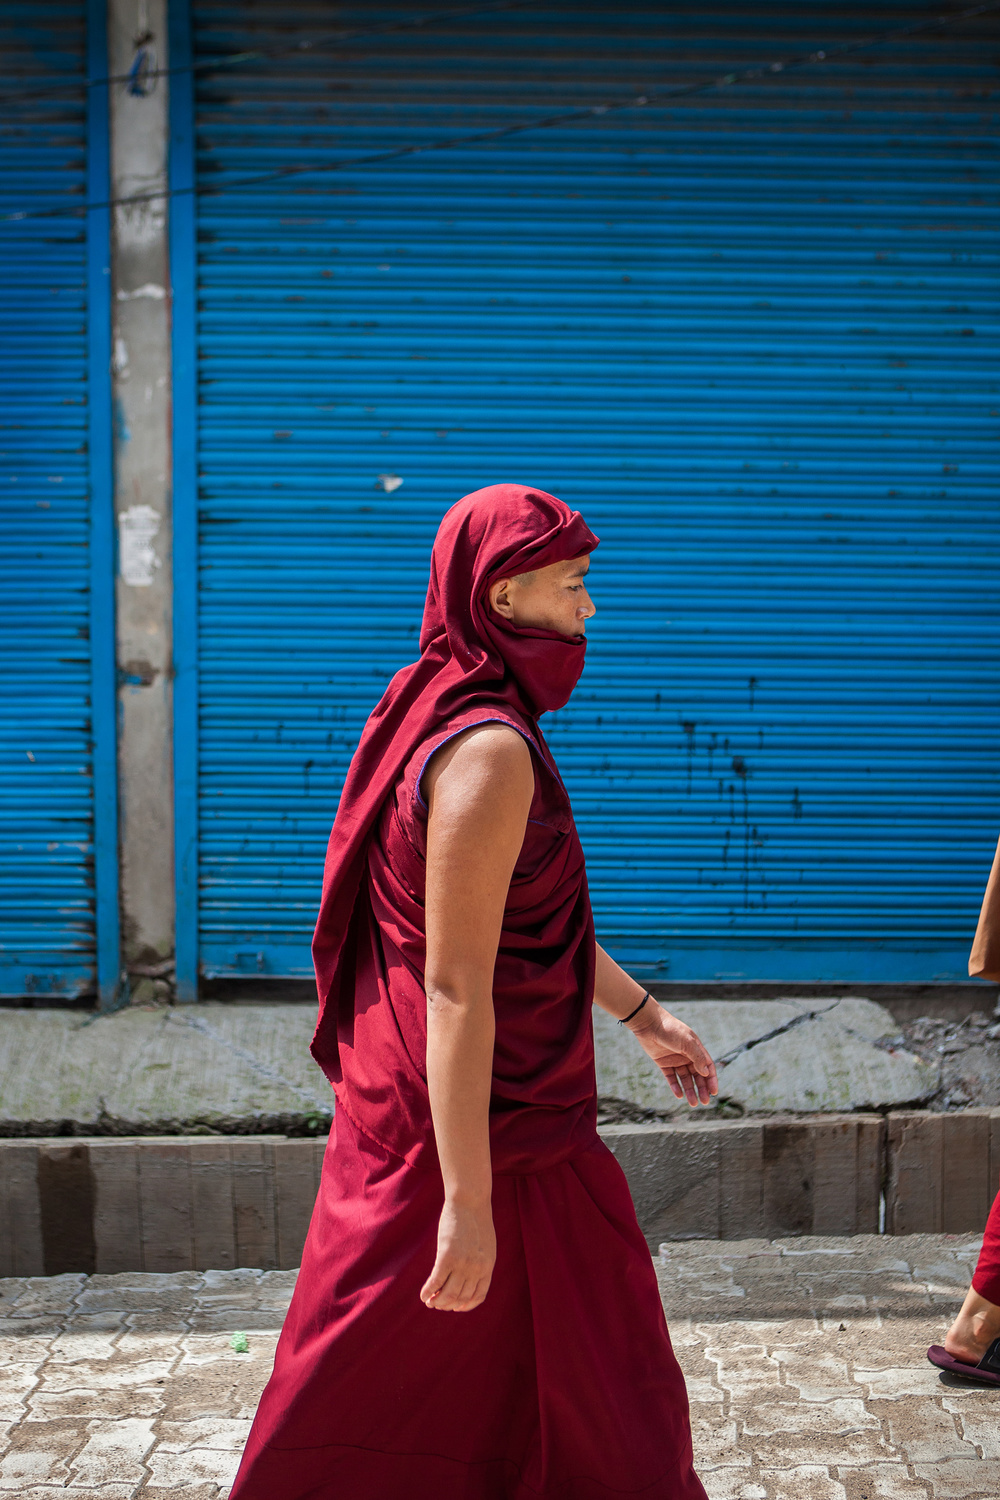 CindyGiovagnoli_India_McCleodganj_travel_photographer_DalaiLama-040.jpg